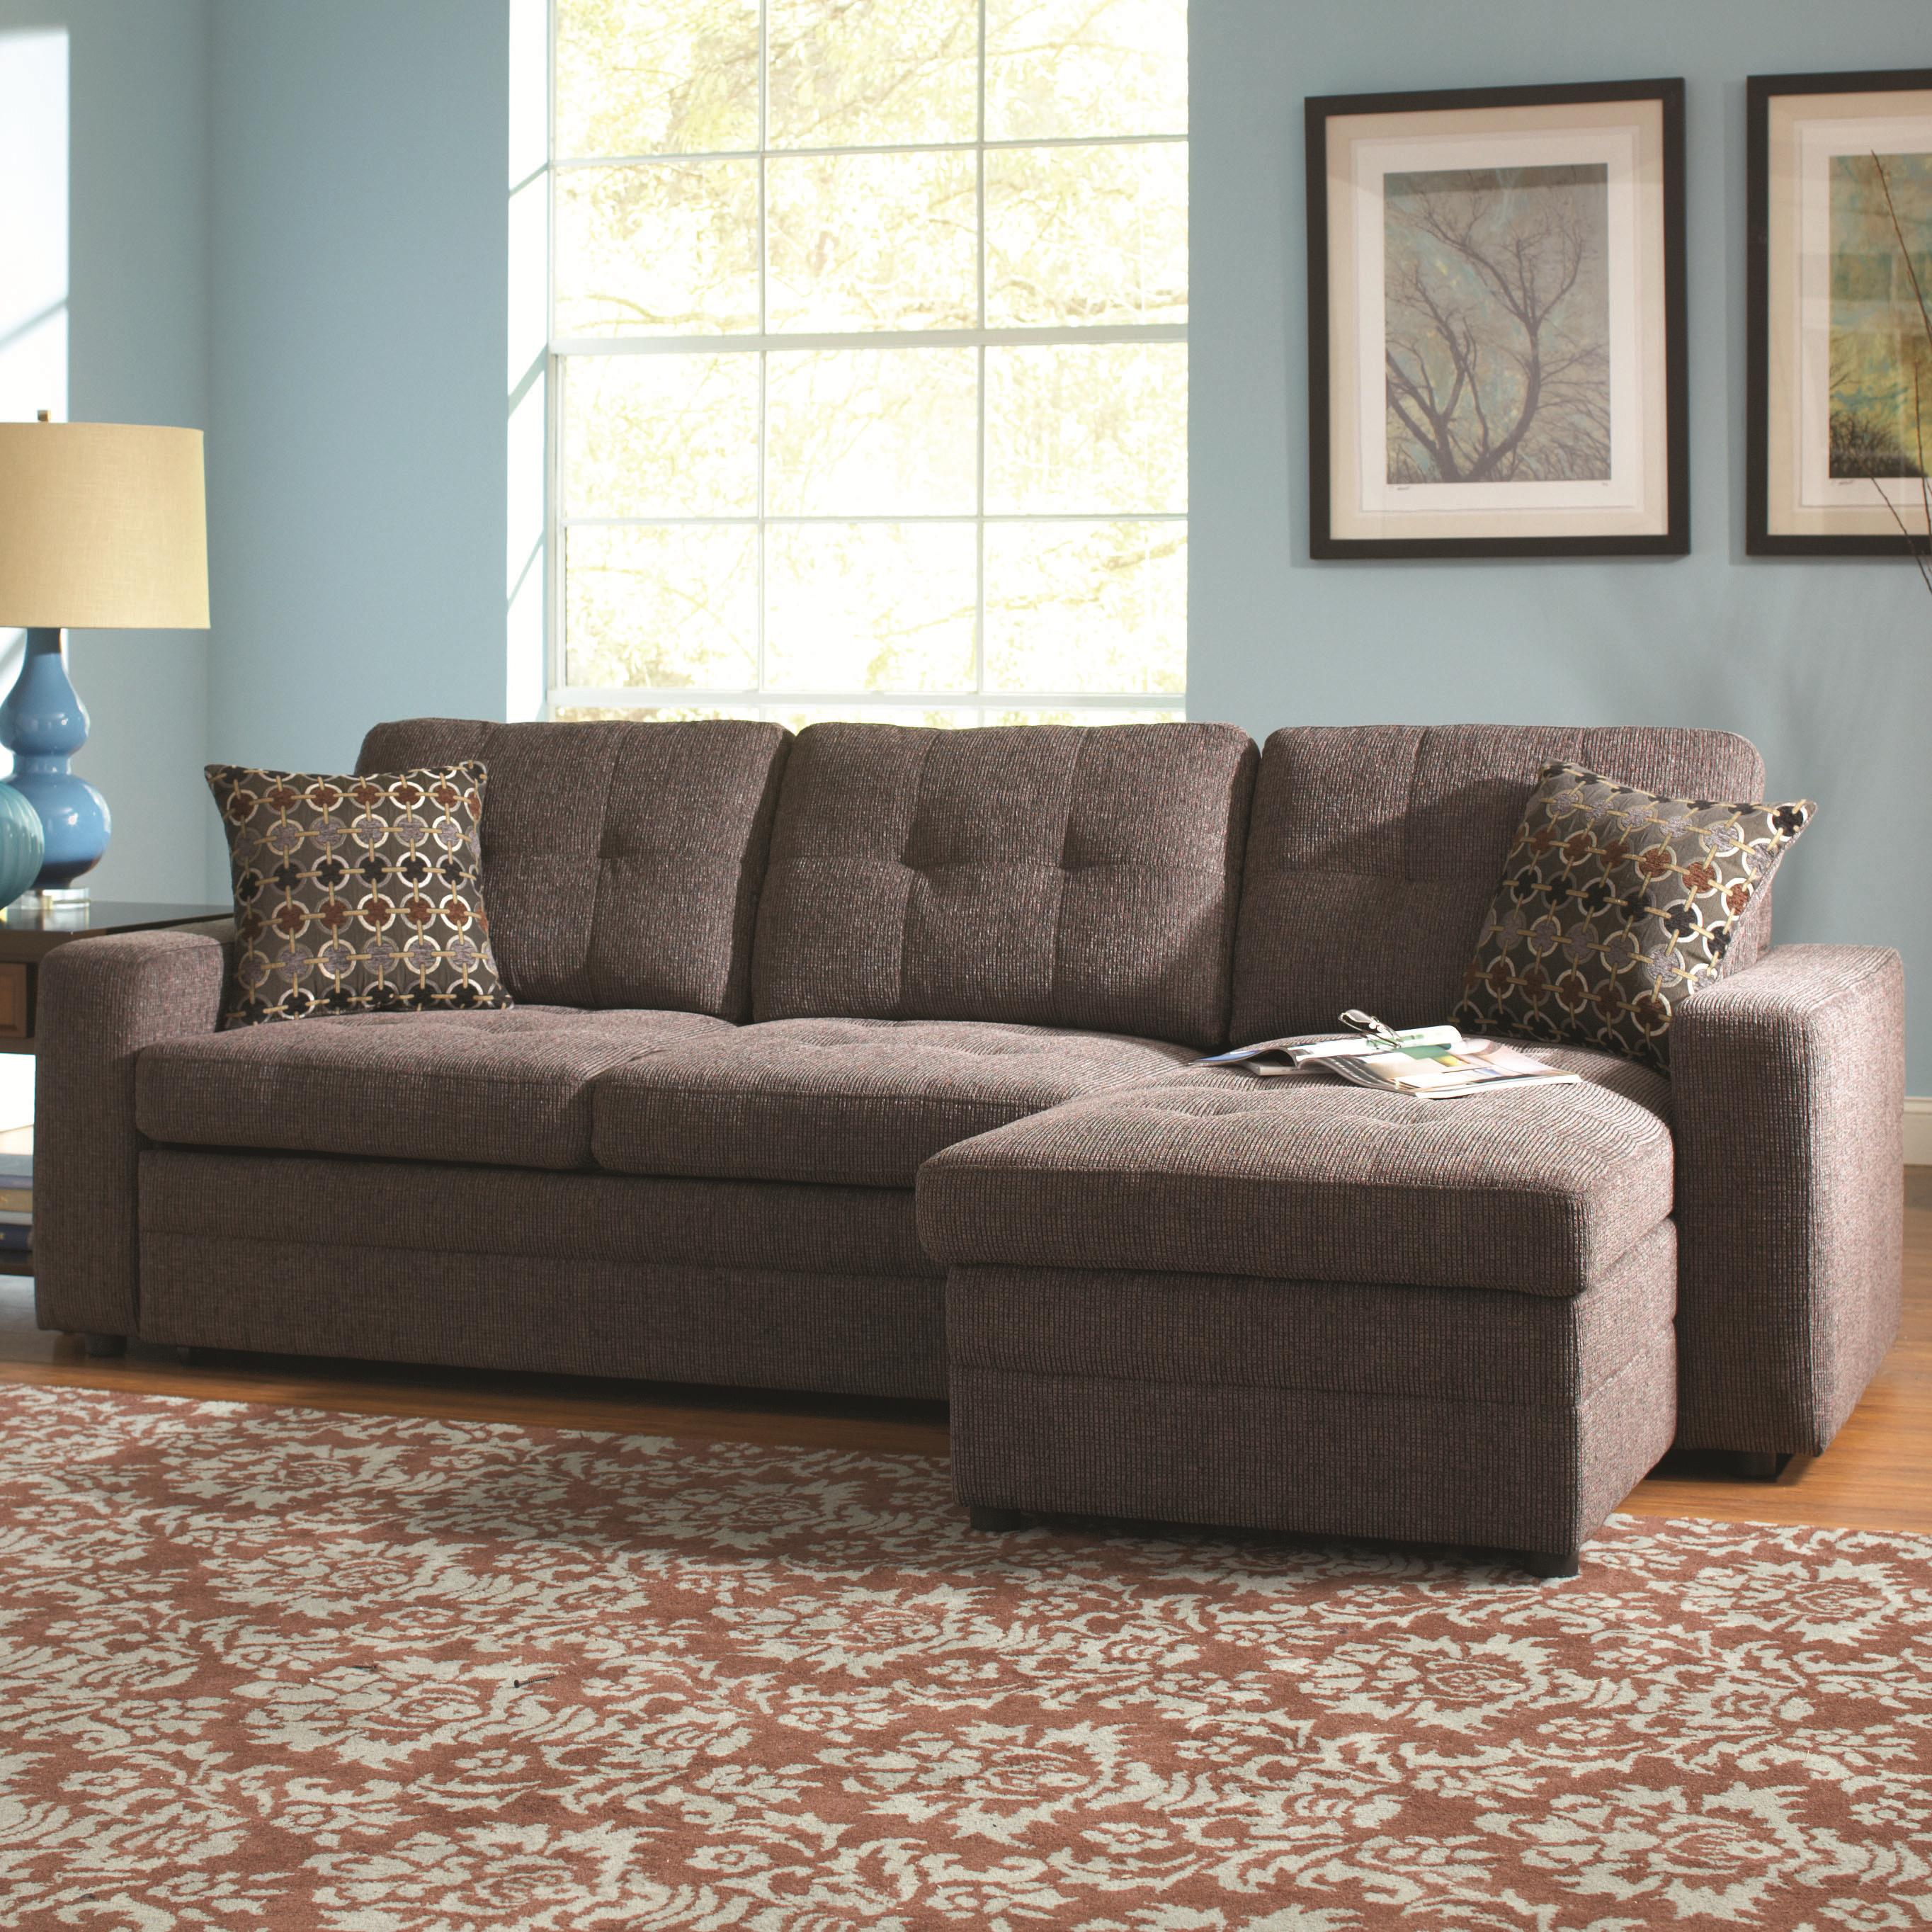 beds image cheap and red under sectional sectionals cabinets affordable ideas sofas design of